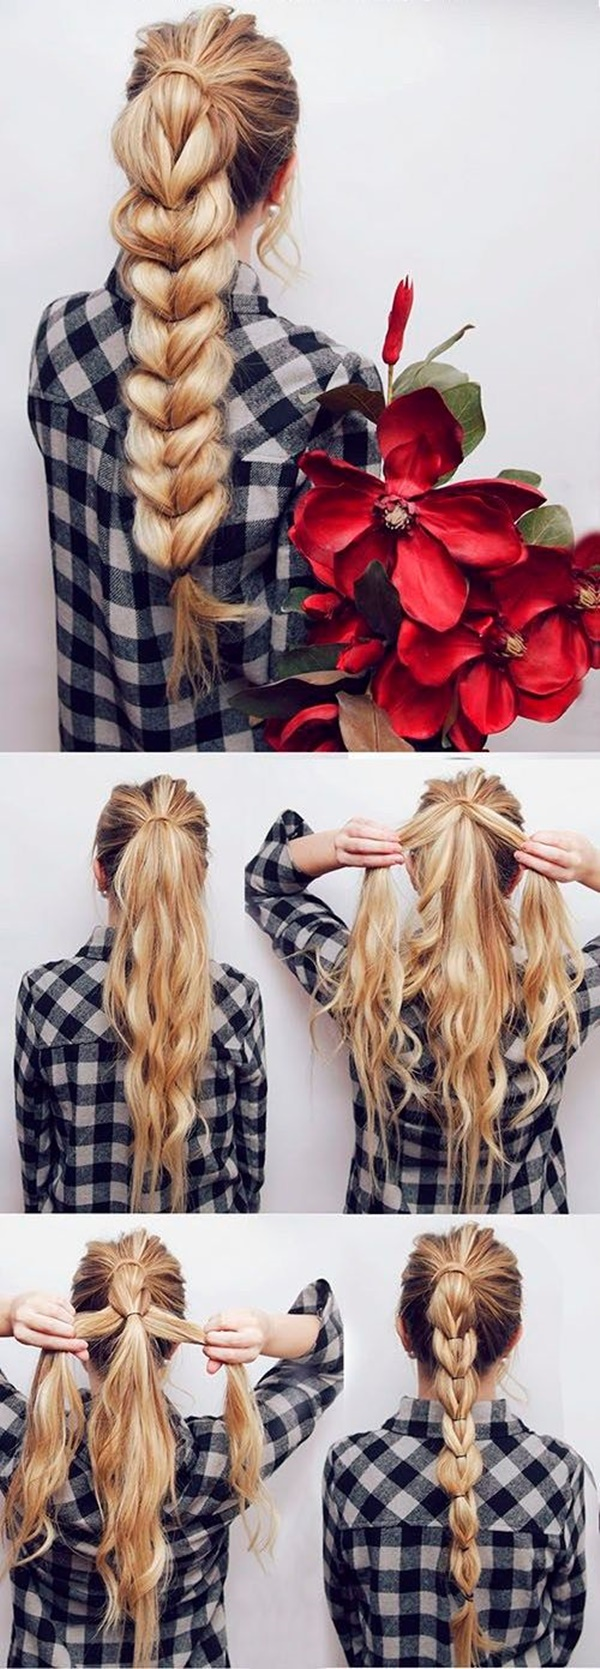 ponytail hairstyles for long hair (31)